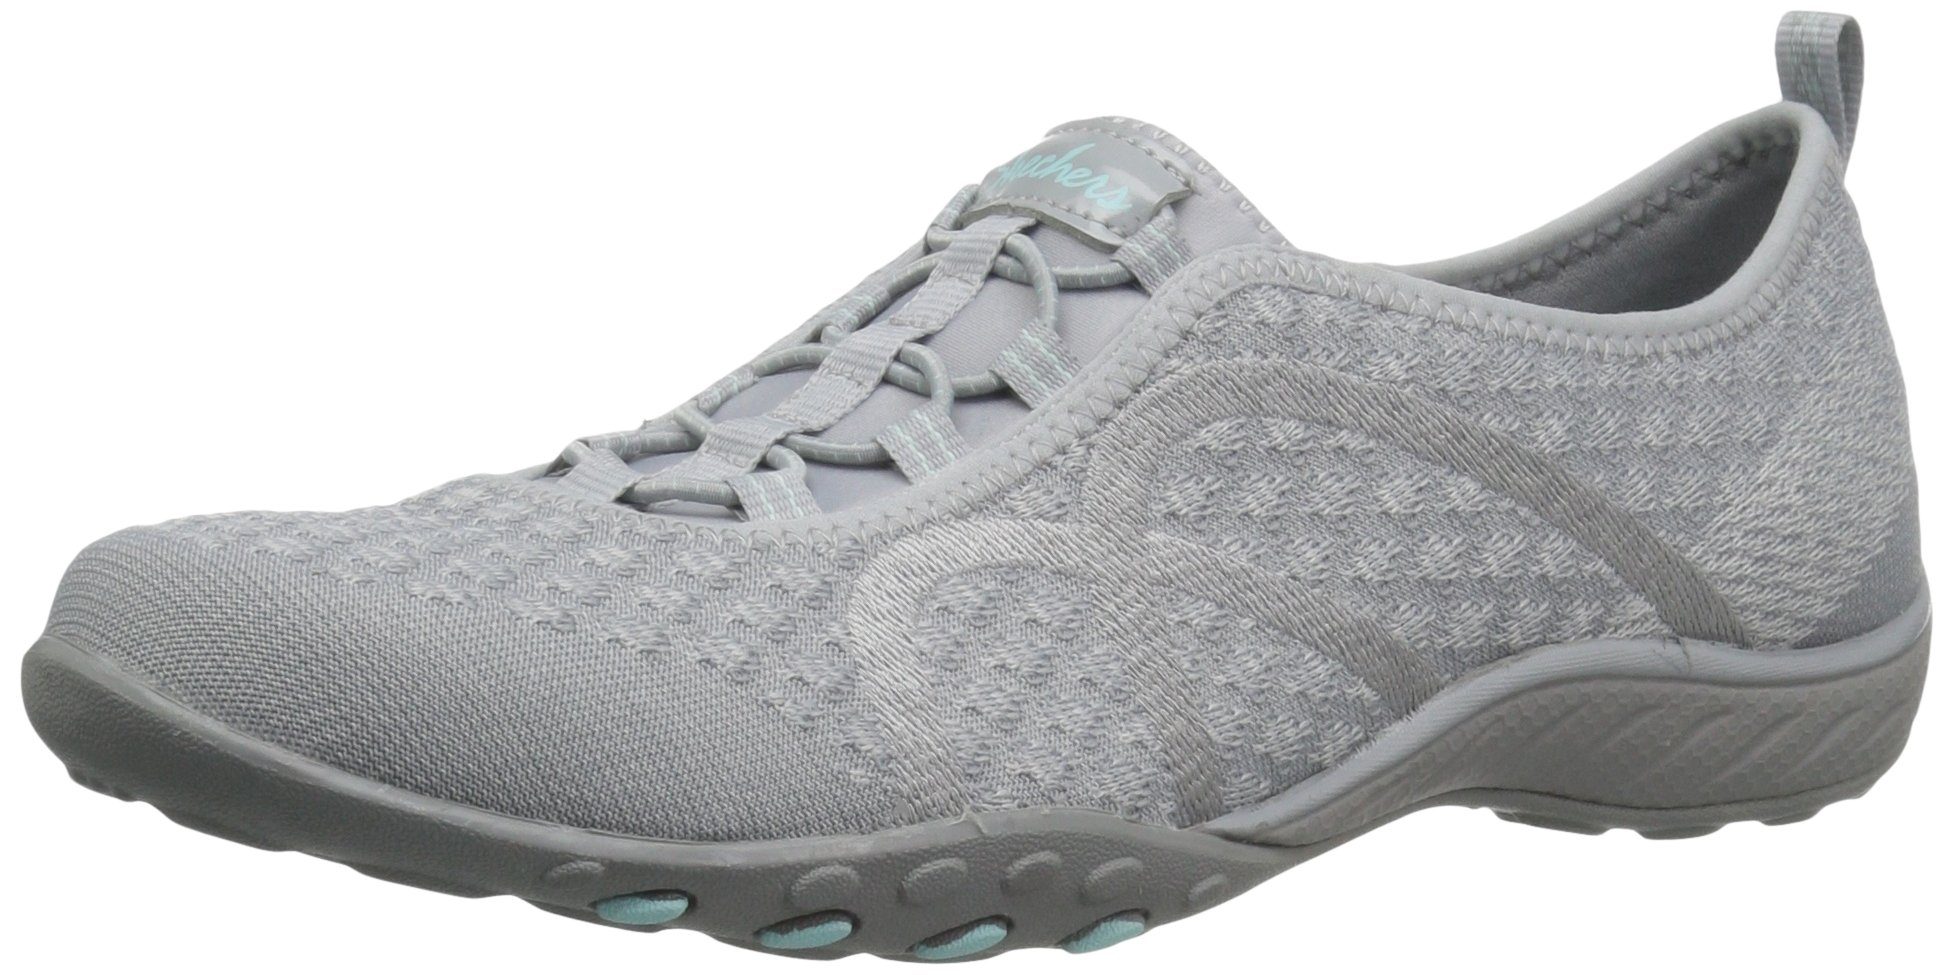 Skechers Sport Women's Breathe Easy Fortune Fashion Sneaker,Grey Knit,5.5 M US